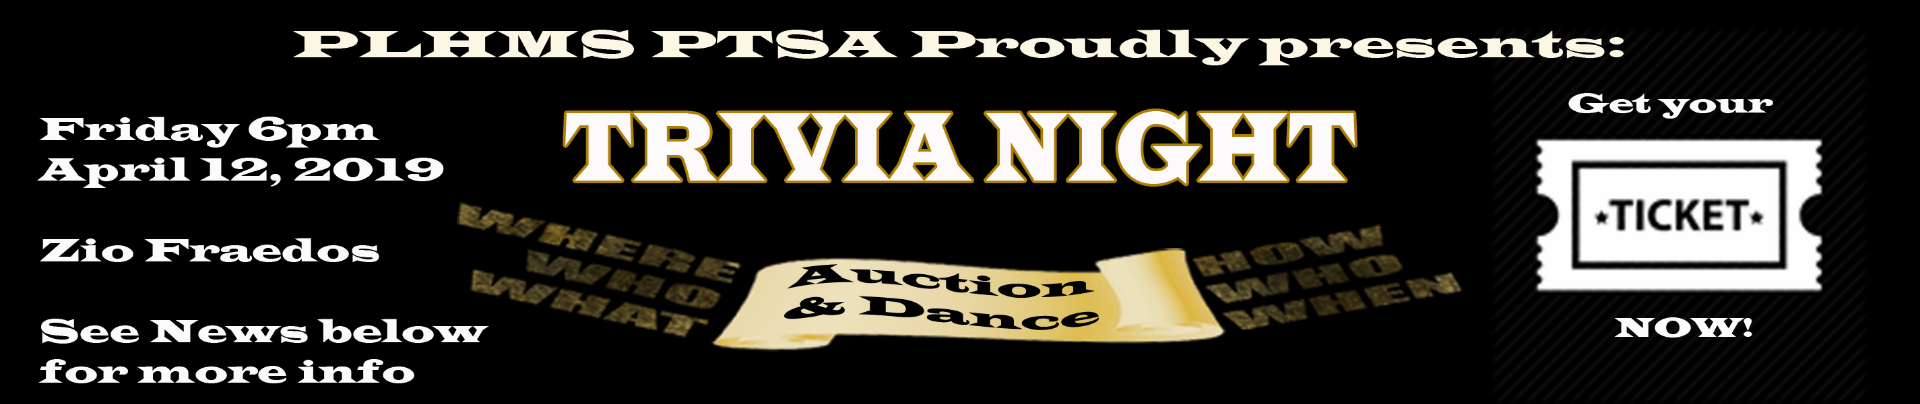 Trivia Night Ticket